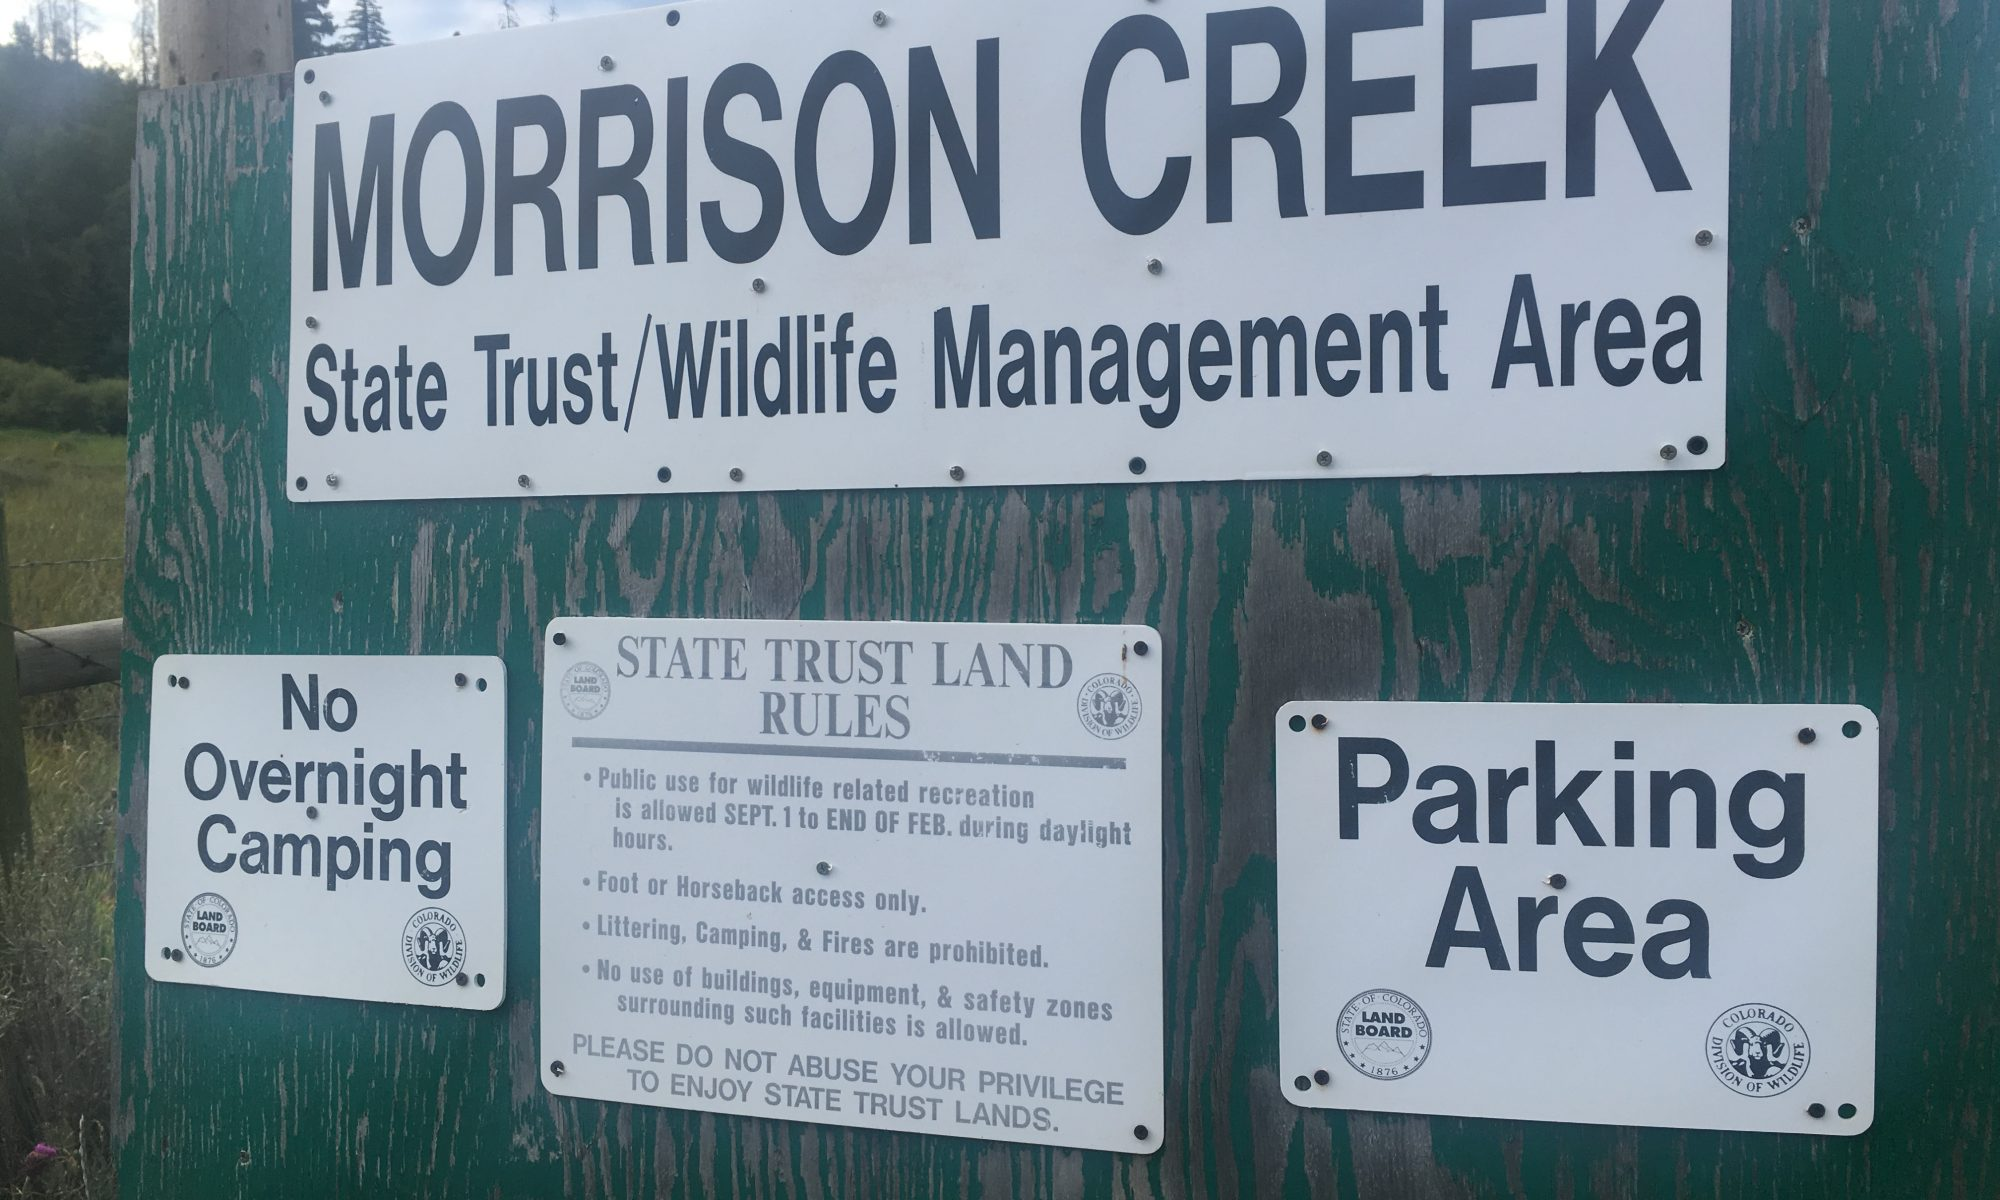 Morrison Creek State Trust Lands sign